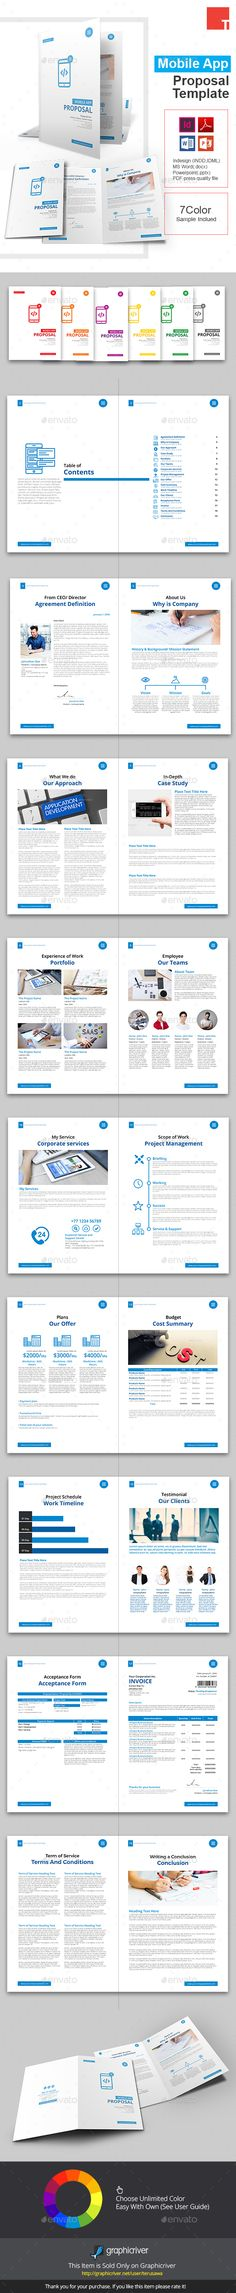 Sugercube InDesign Proposal Template for Business Proposal - purchase proposal templates